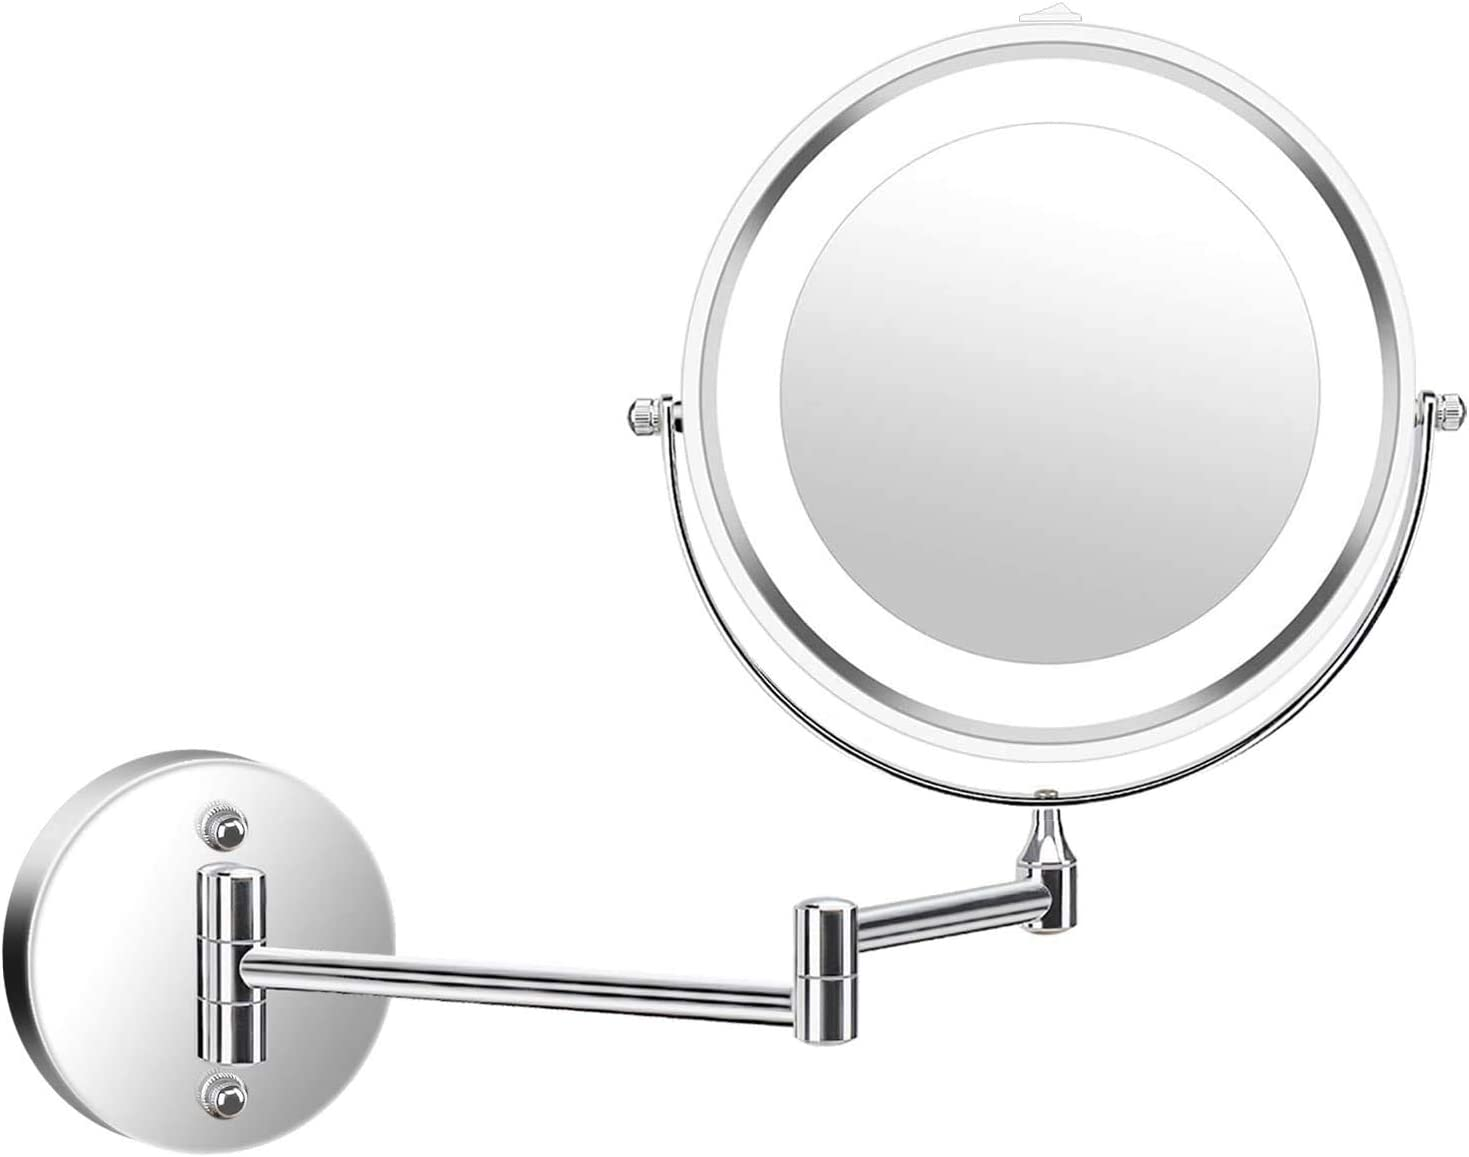 Wall Mounted Vanity Makeup Mirror Lighted Double Sided 1X 5X Magnification 360 Degree Swivel Rotation Cosmetic Mirror for Bathroom Hotels, Powered by Batteries Not Included -7 inches